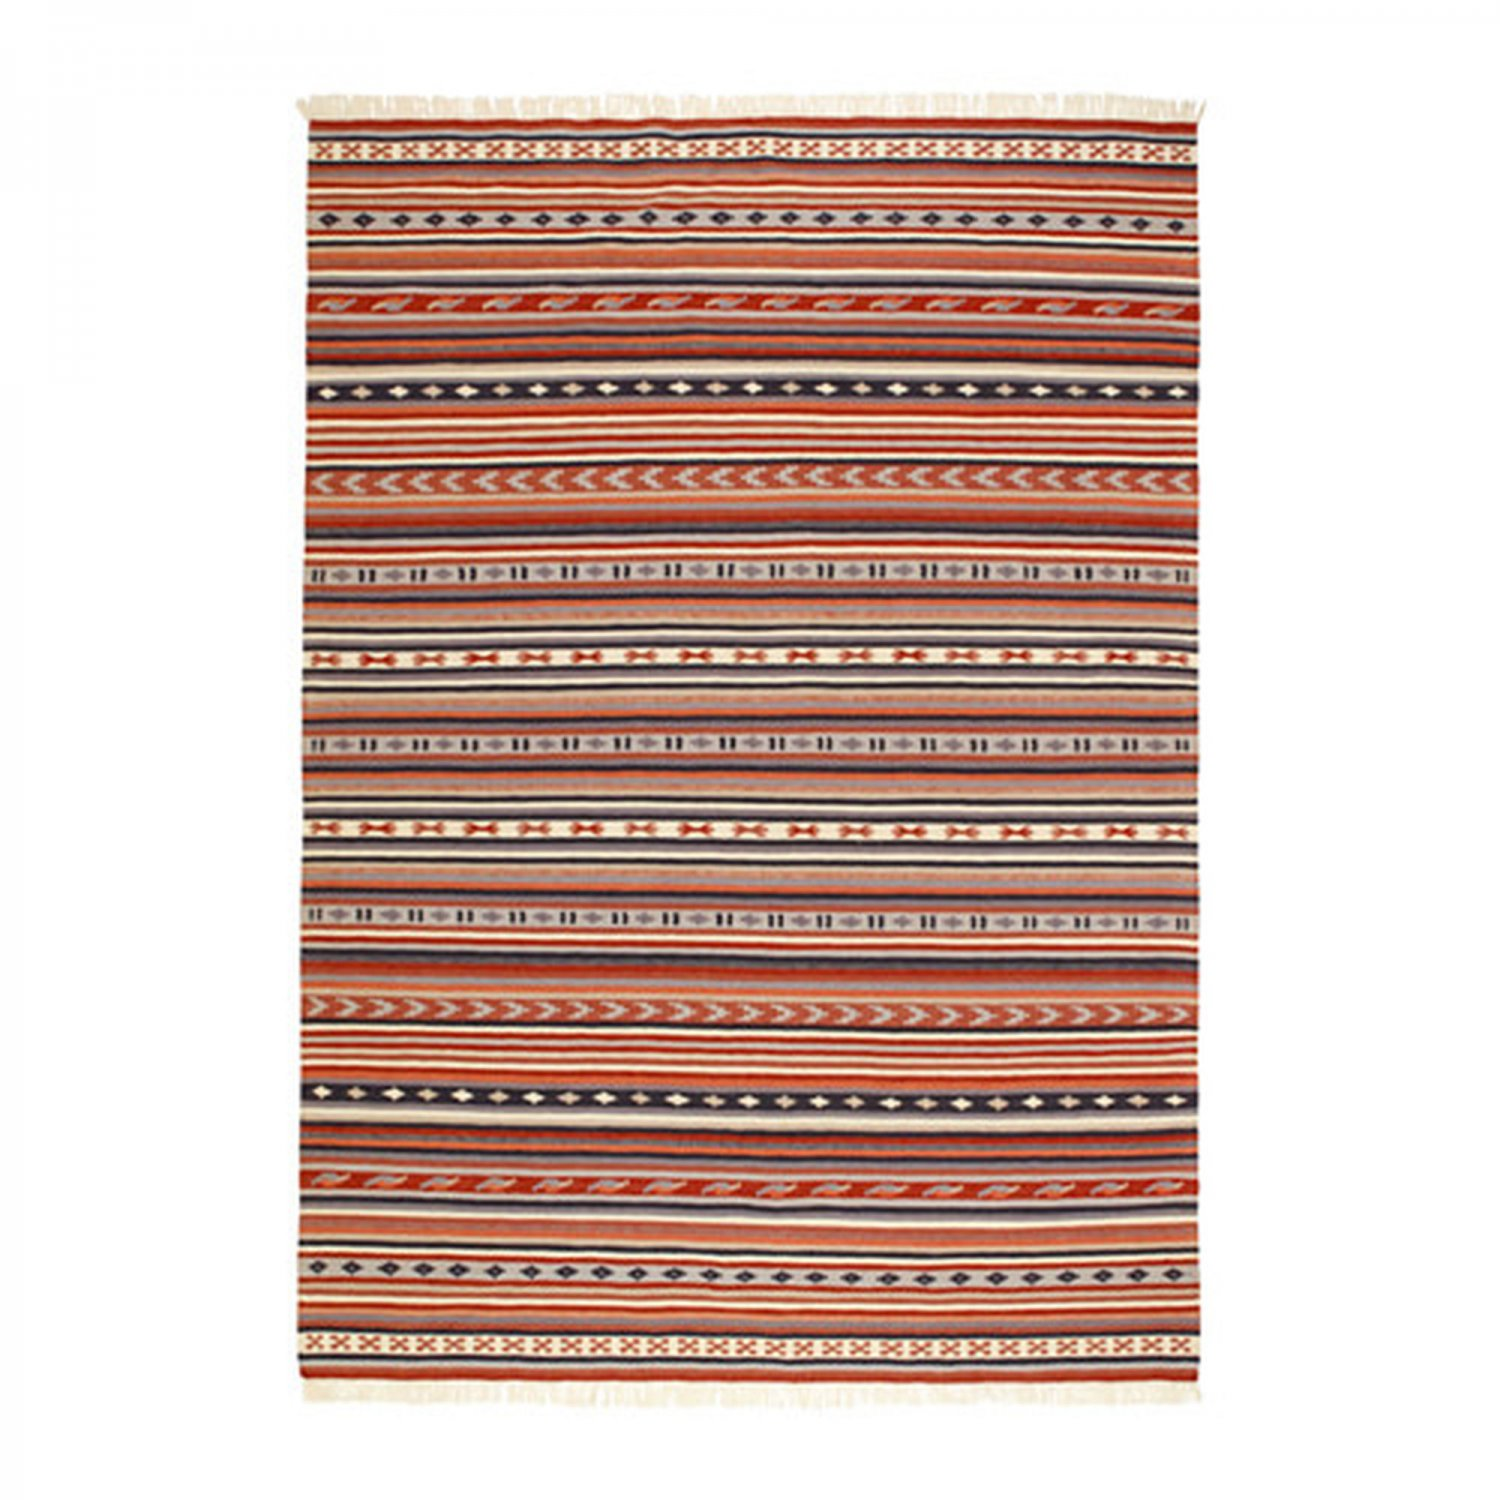 "IKEA Kattrup Area RUG Mat WOOL Multicolor Rust Hand-Woven Flatwoven INDIA Ethnic 7'10"" x 5'7"""